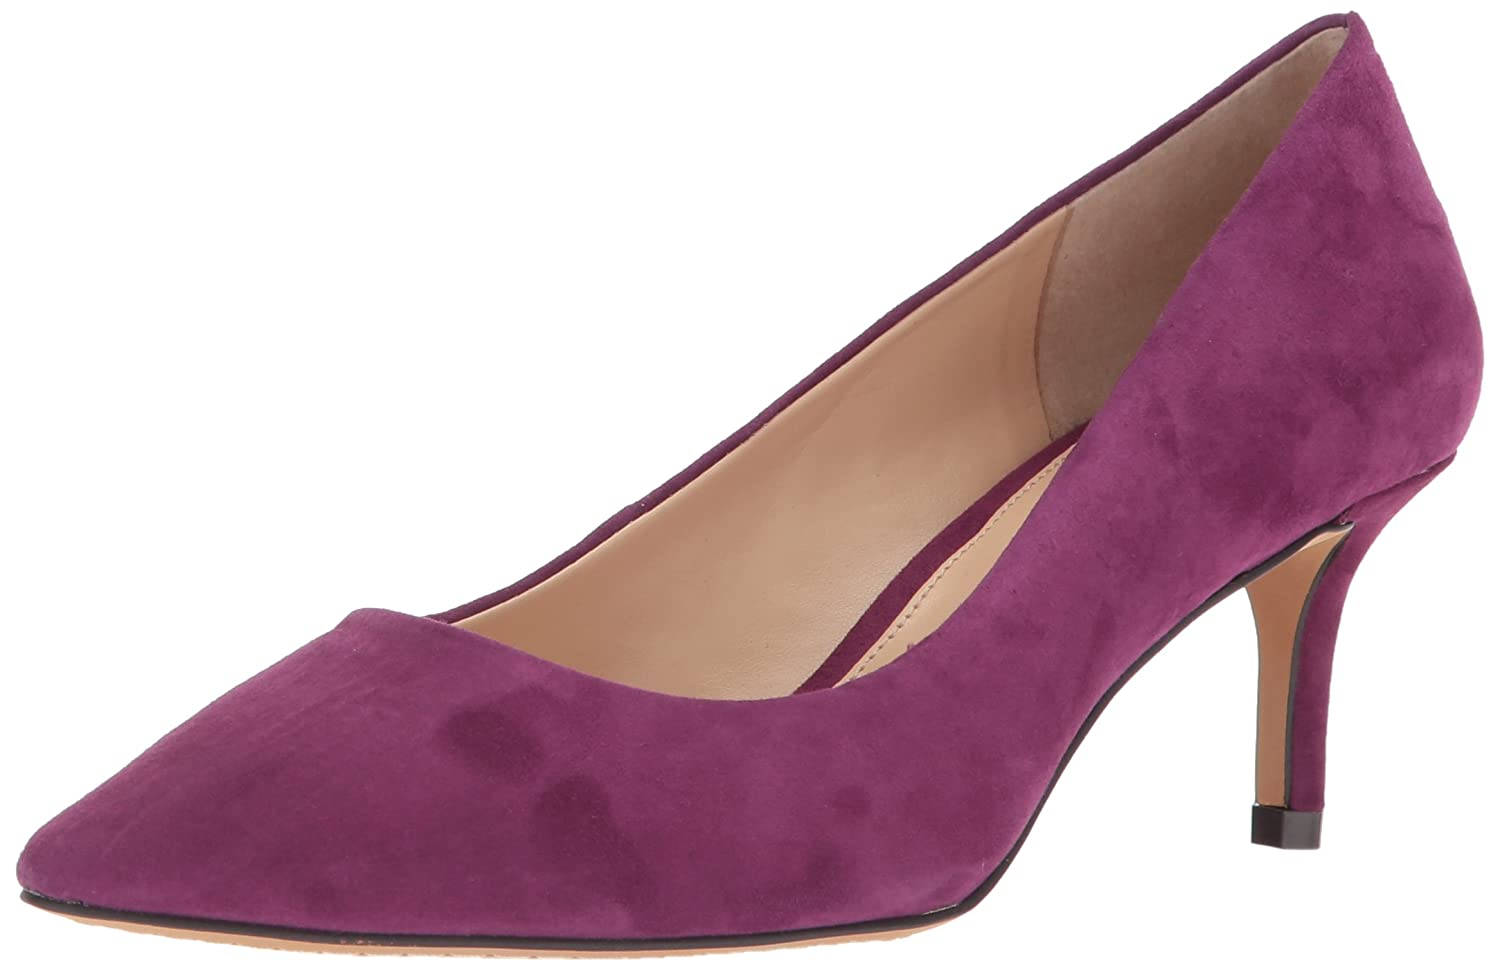 Vince Camuto Women's Kemira Pump B07693Z3JQ 8.5 B(M) US|Plum Perfect